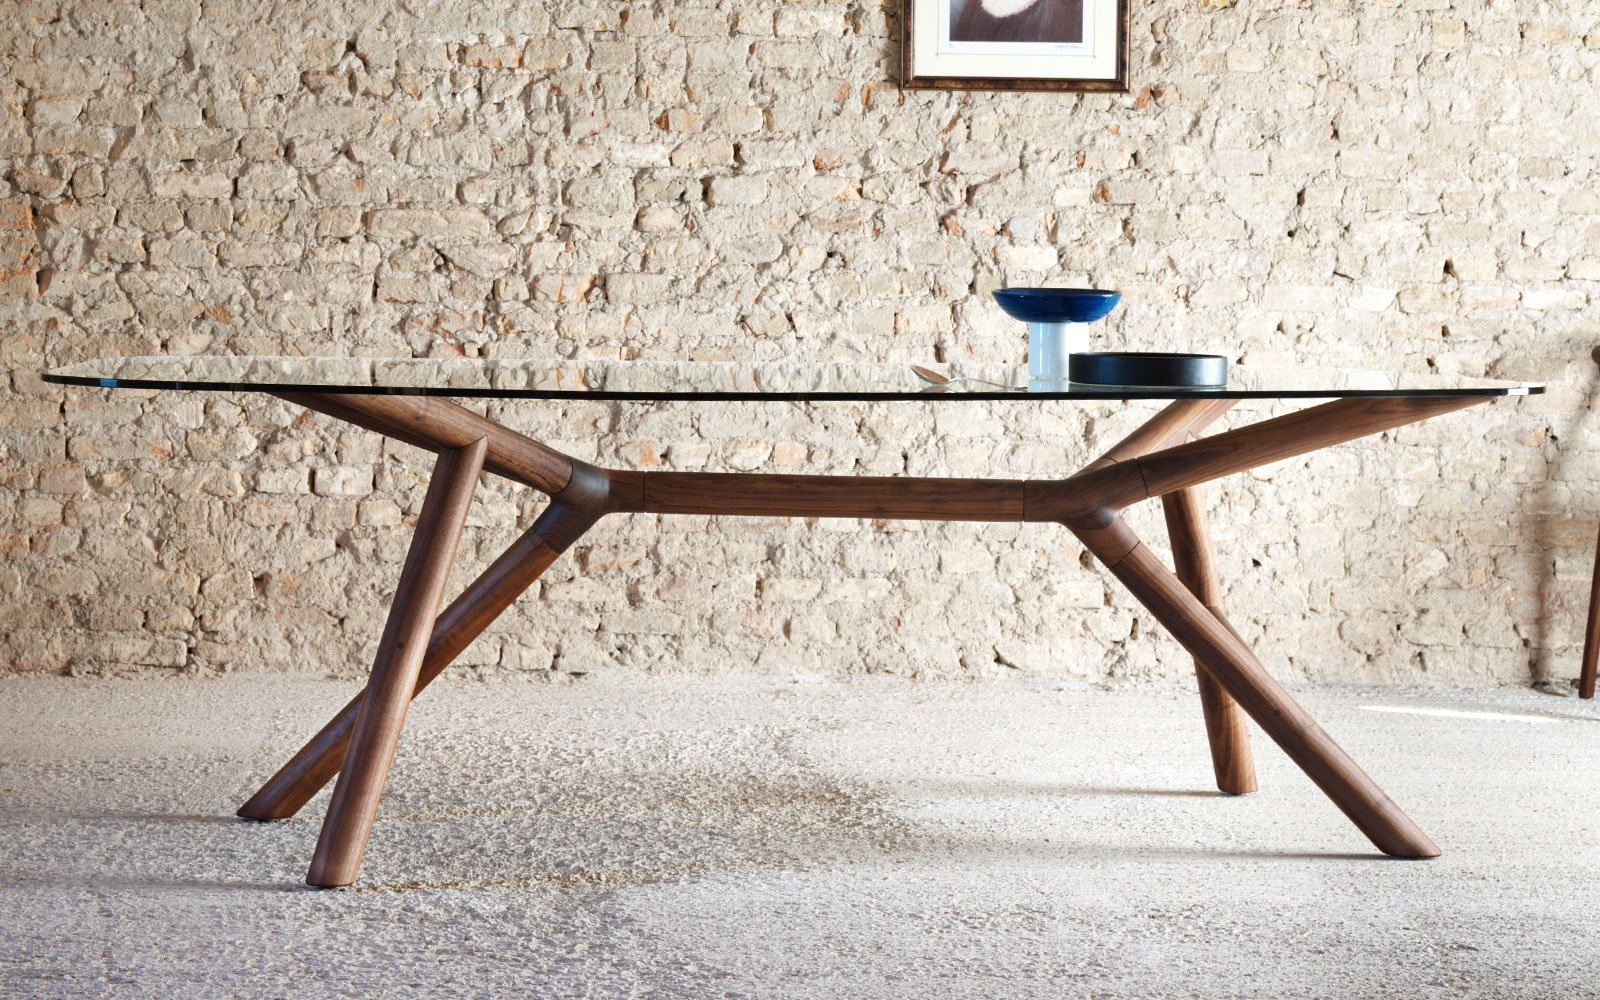 Otto-Contemporary-Dining-Table-with-glass-top